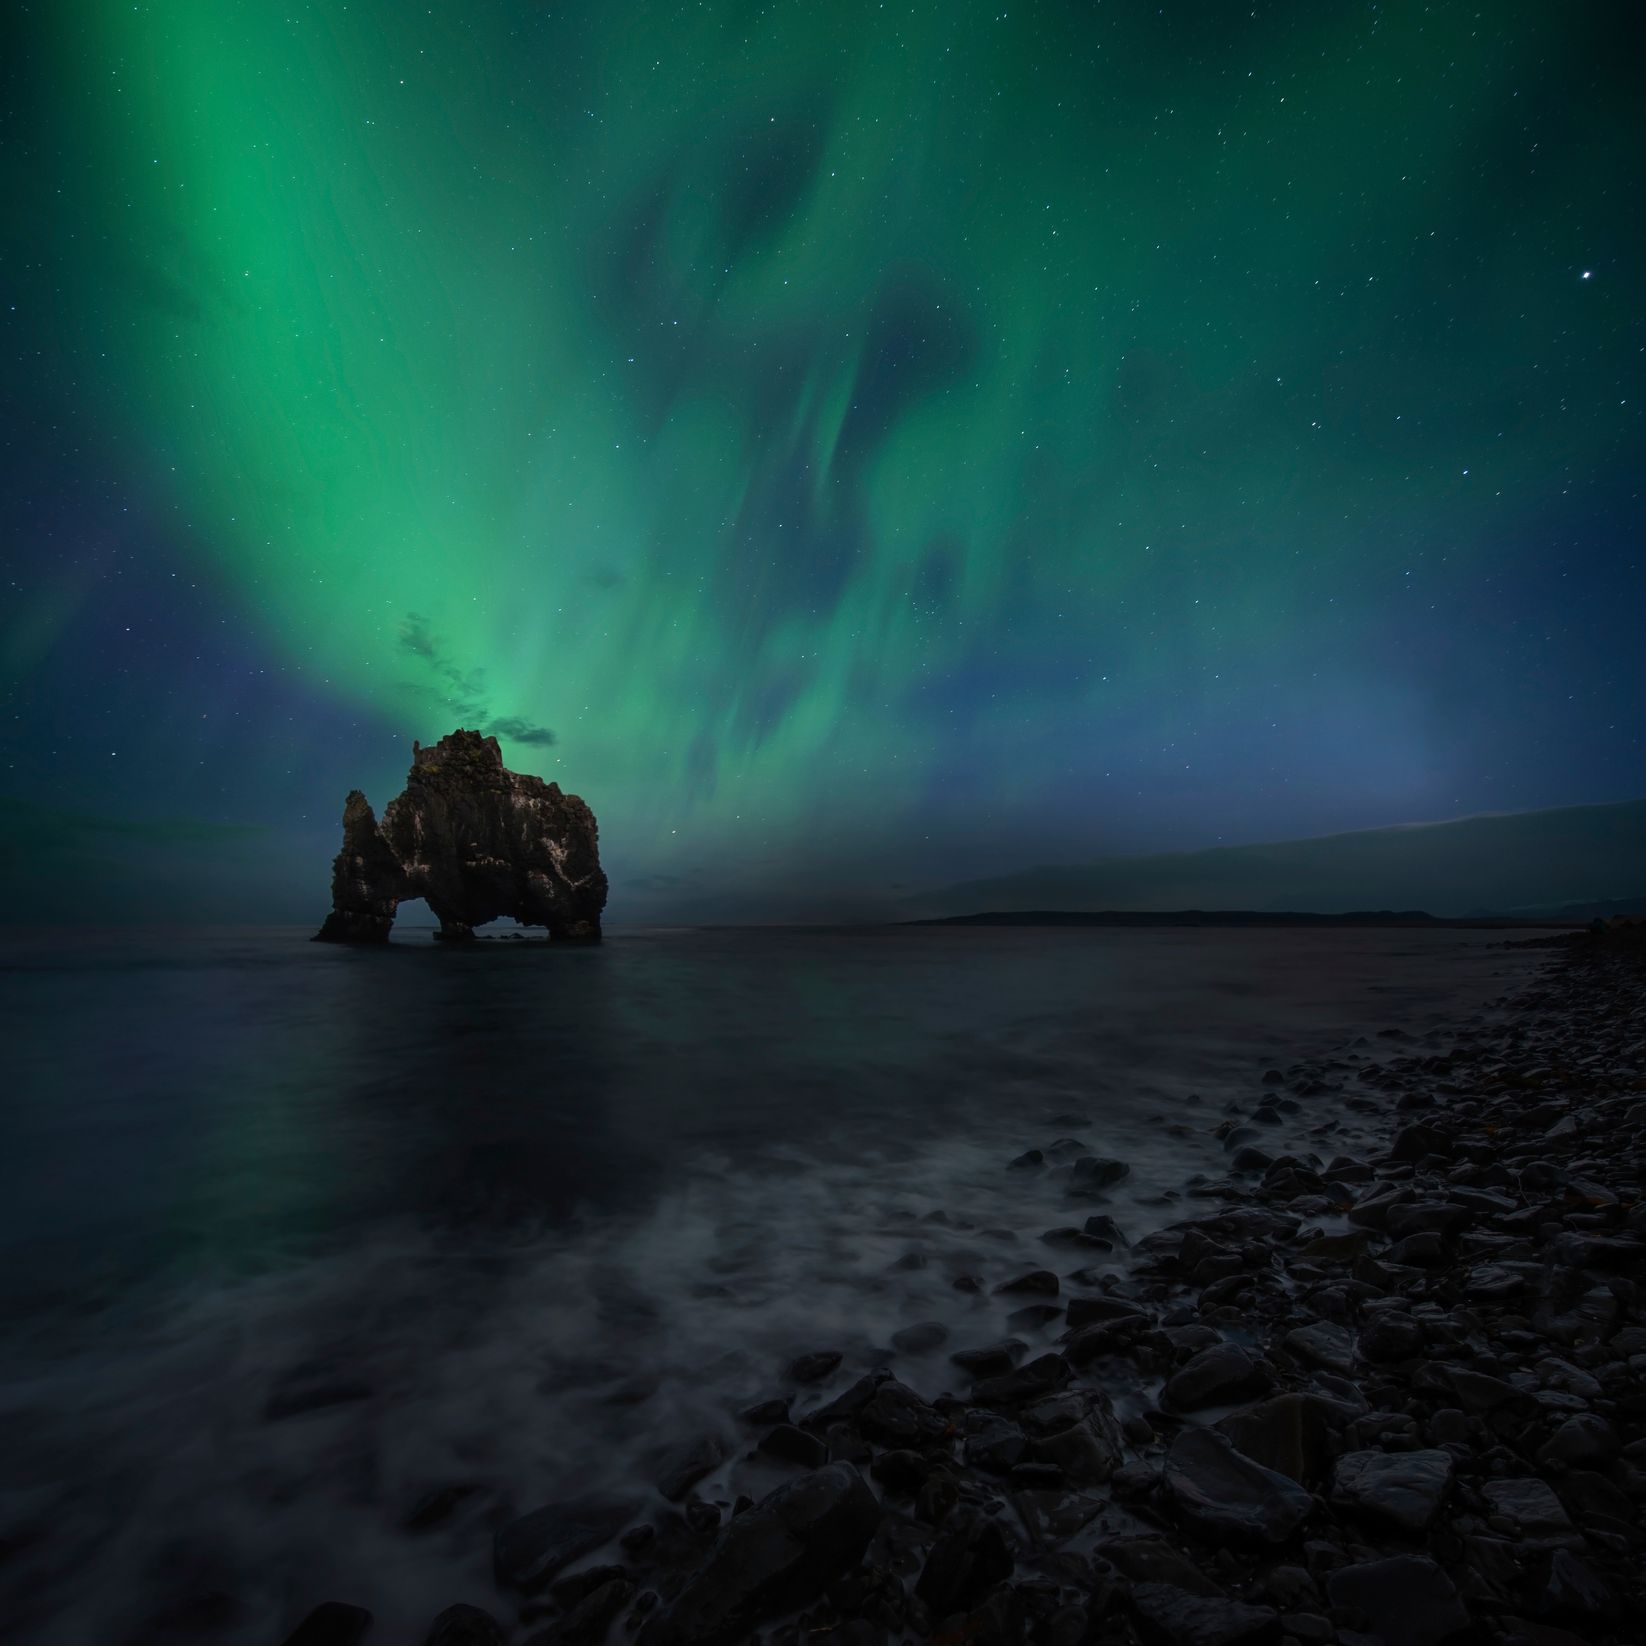 Catch the Northern Lights in Iceland